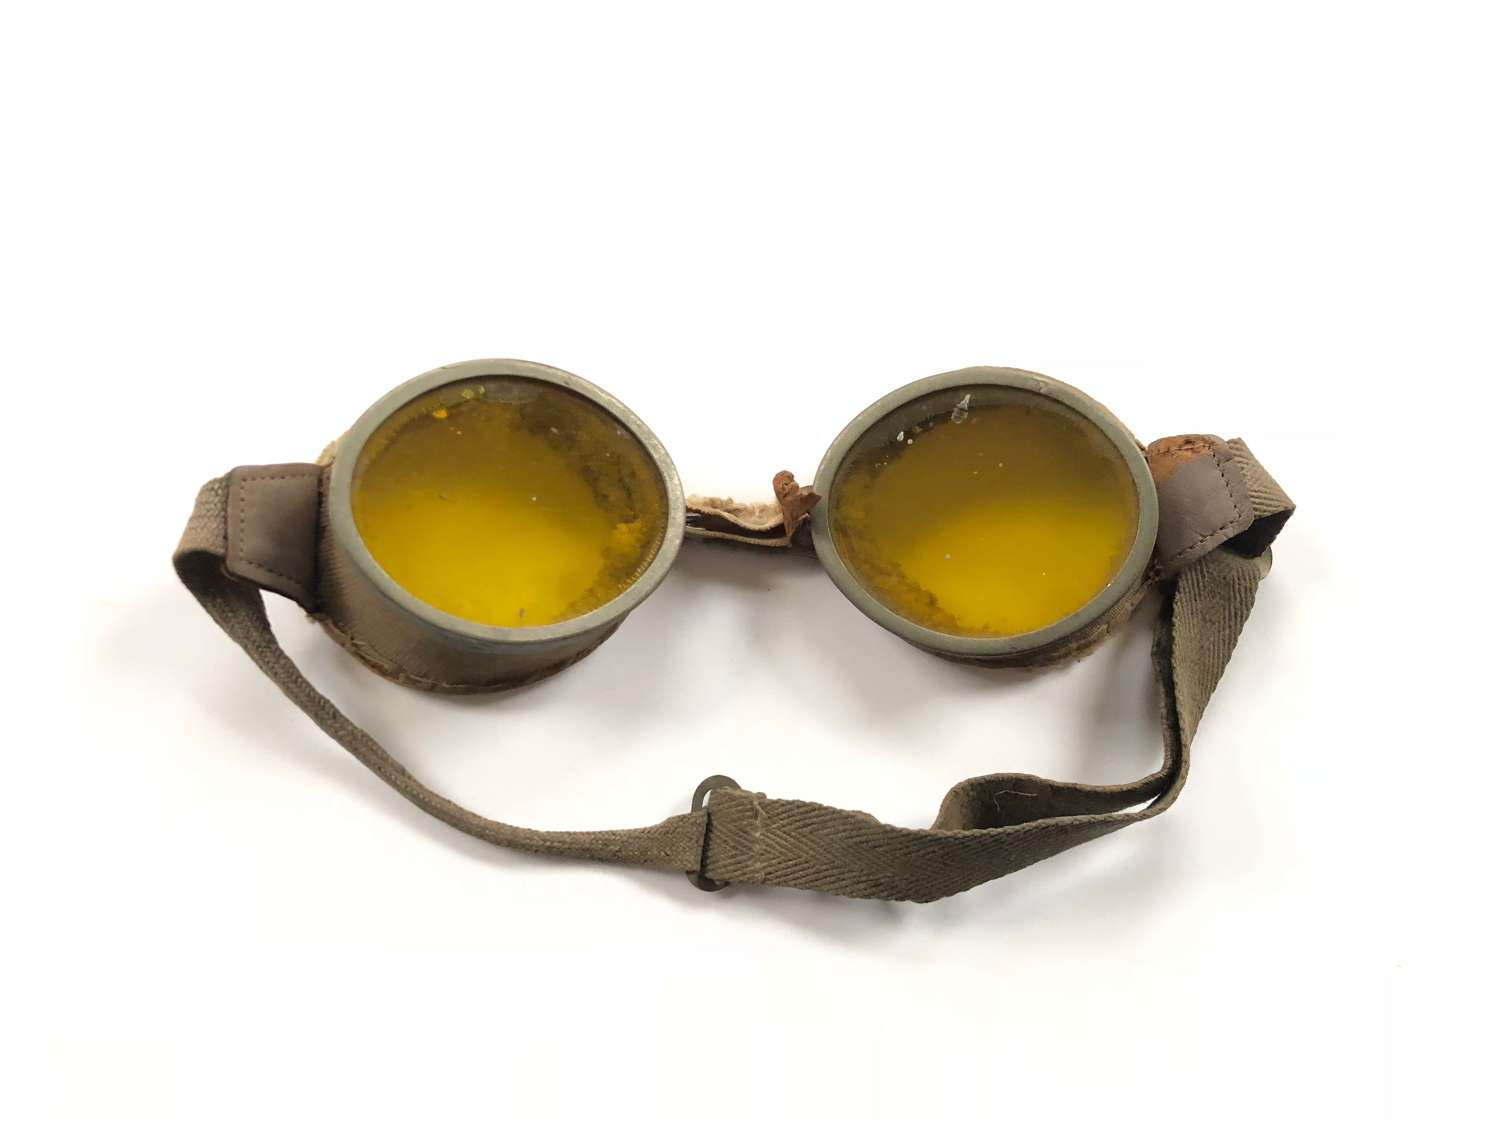 WW2 British Army Issue Goggles.